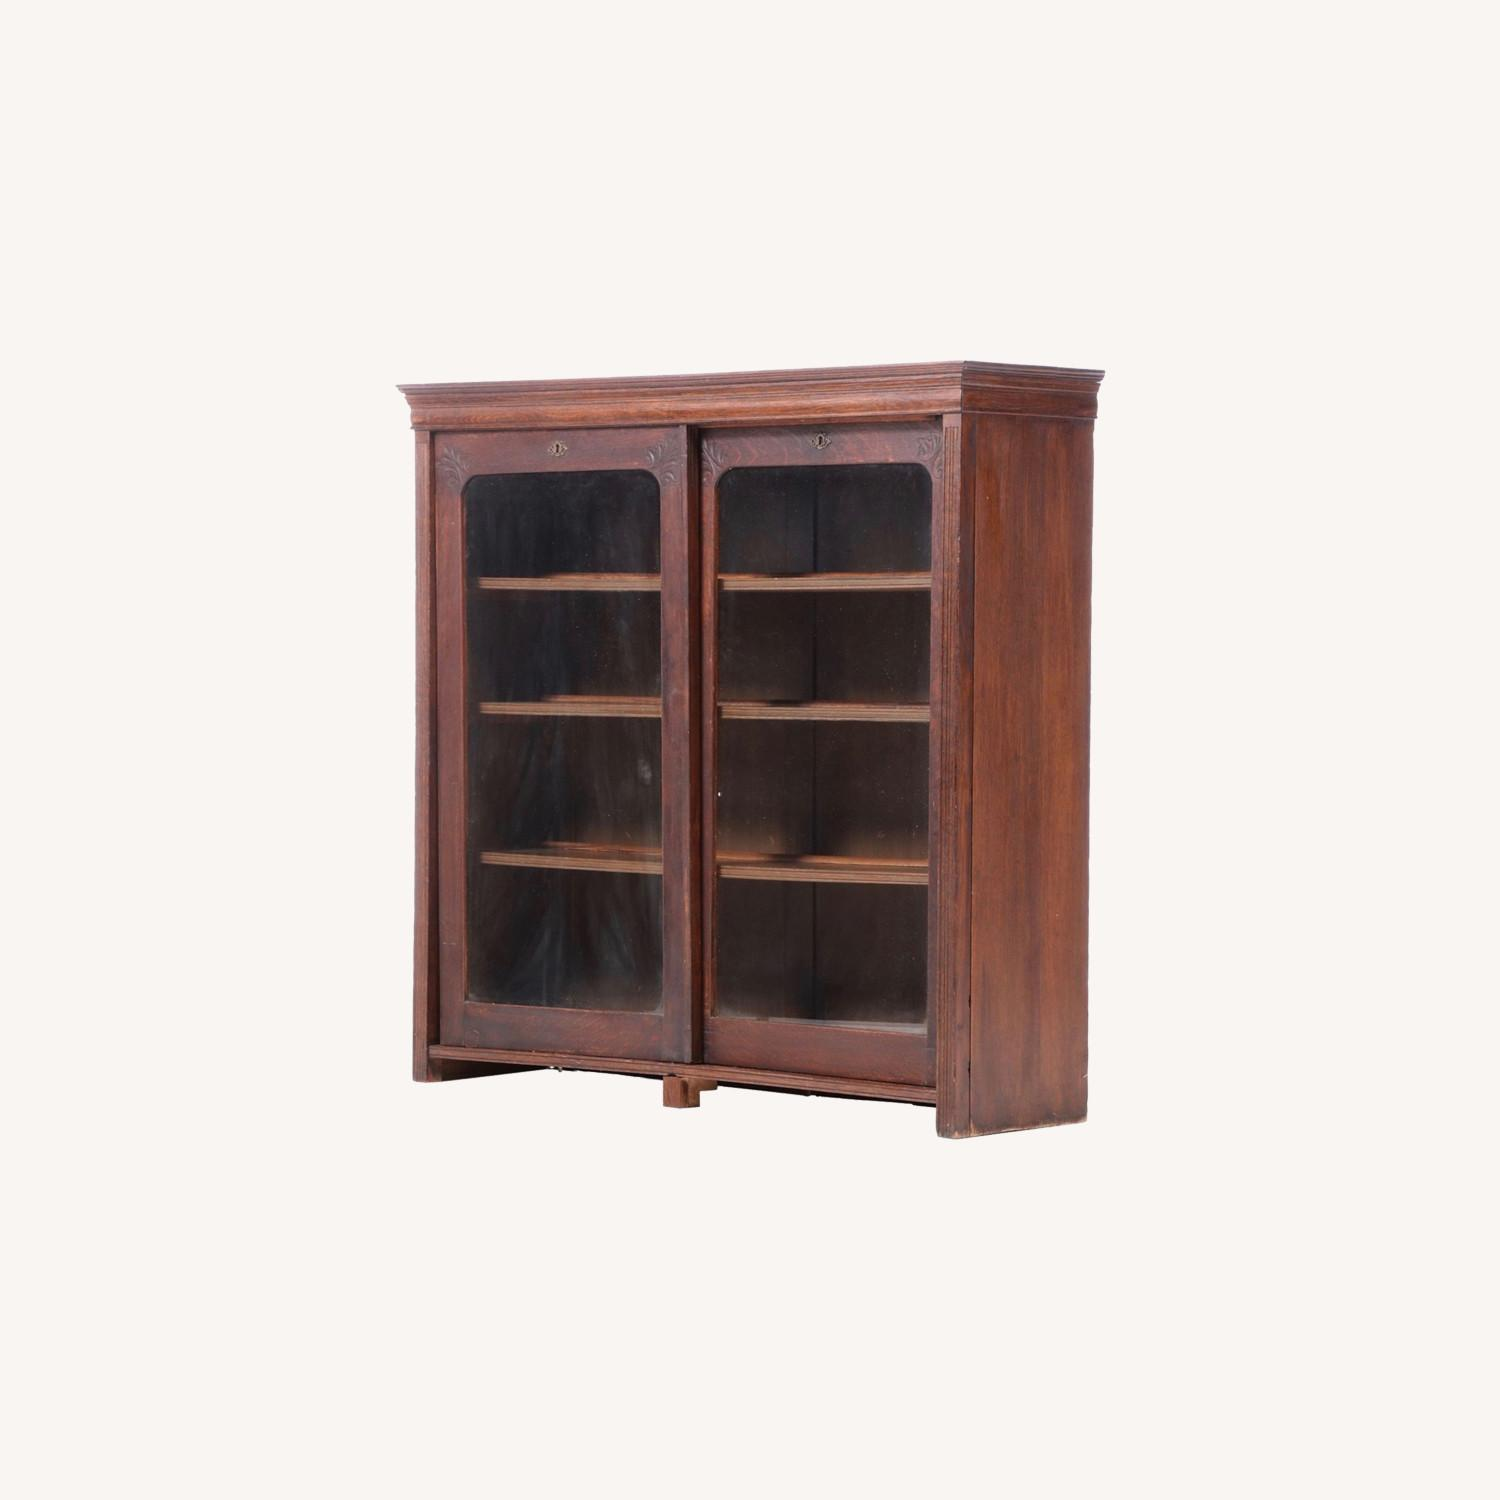 Oak Bookcase Cabinet, Early 20th Century - image-0